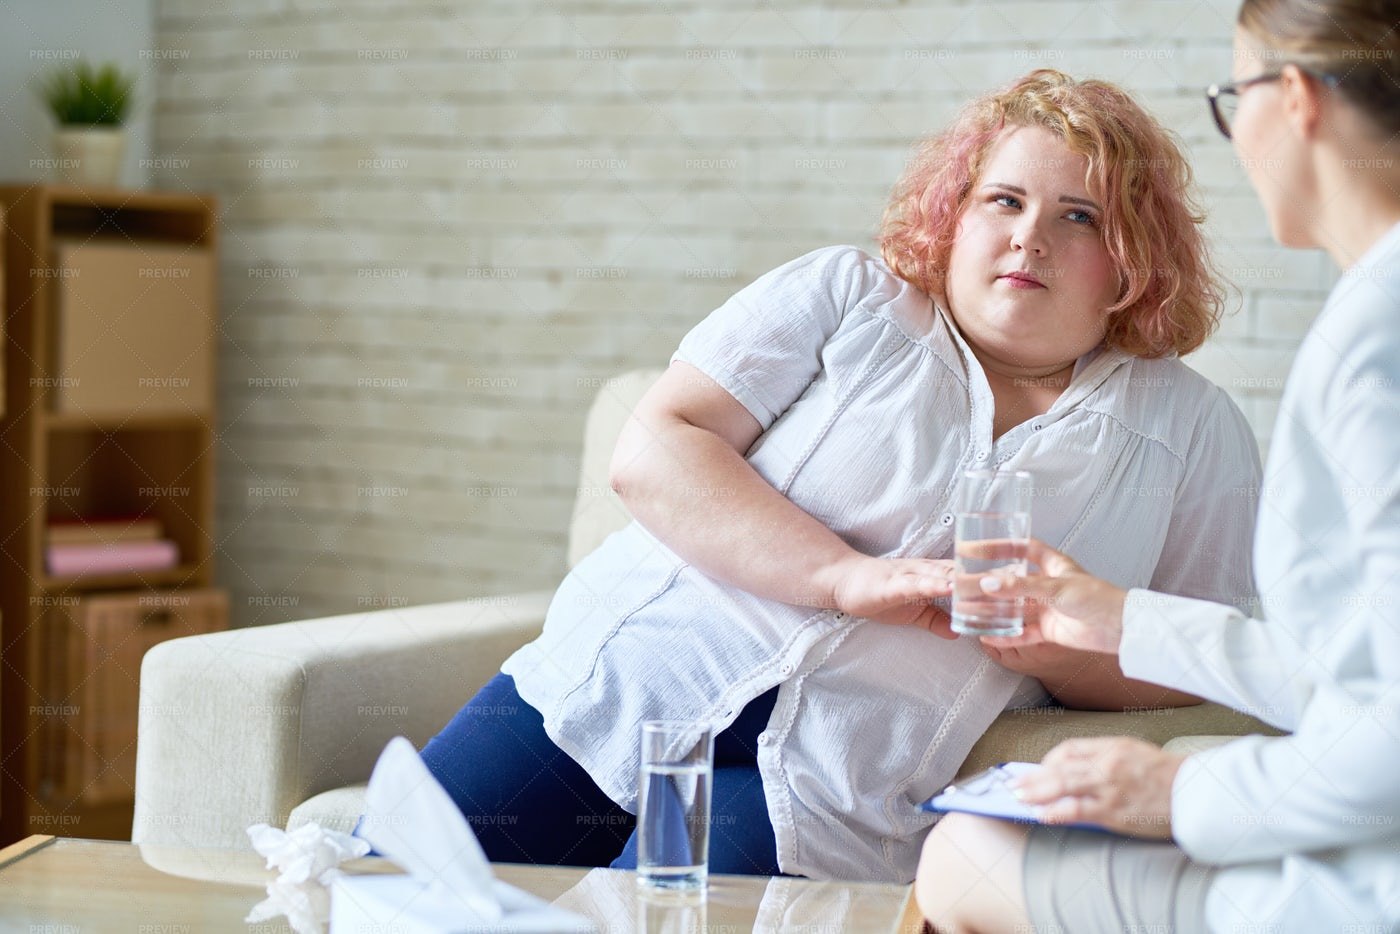 Therapy Session At Psychologists...: Stock Photos